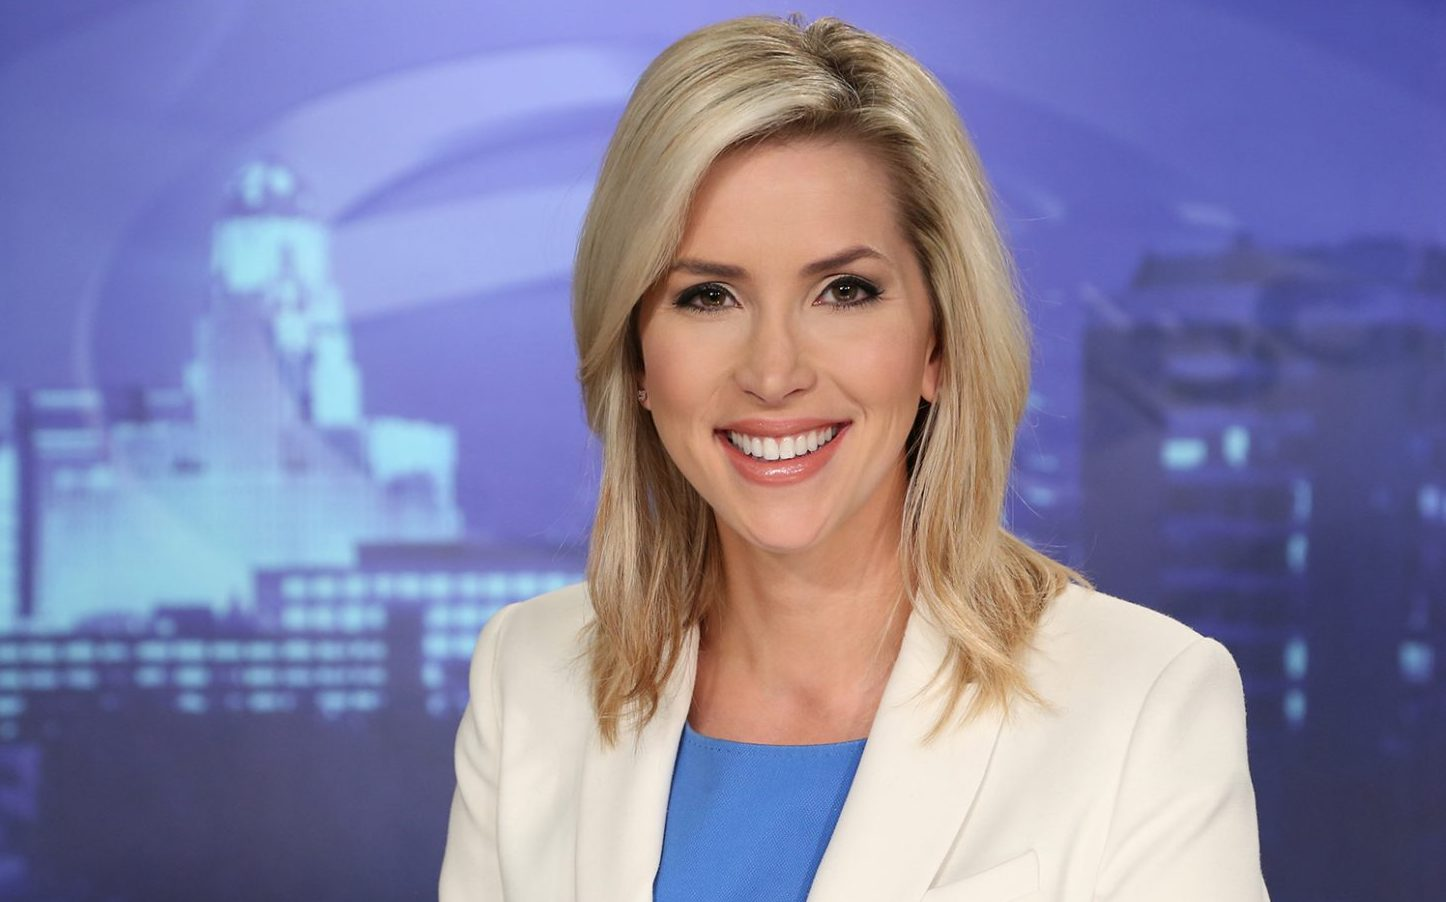 Channel 7's Ashley Rowe takes a stand in support of Meryl Streep. (Ch.7 photo)